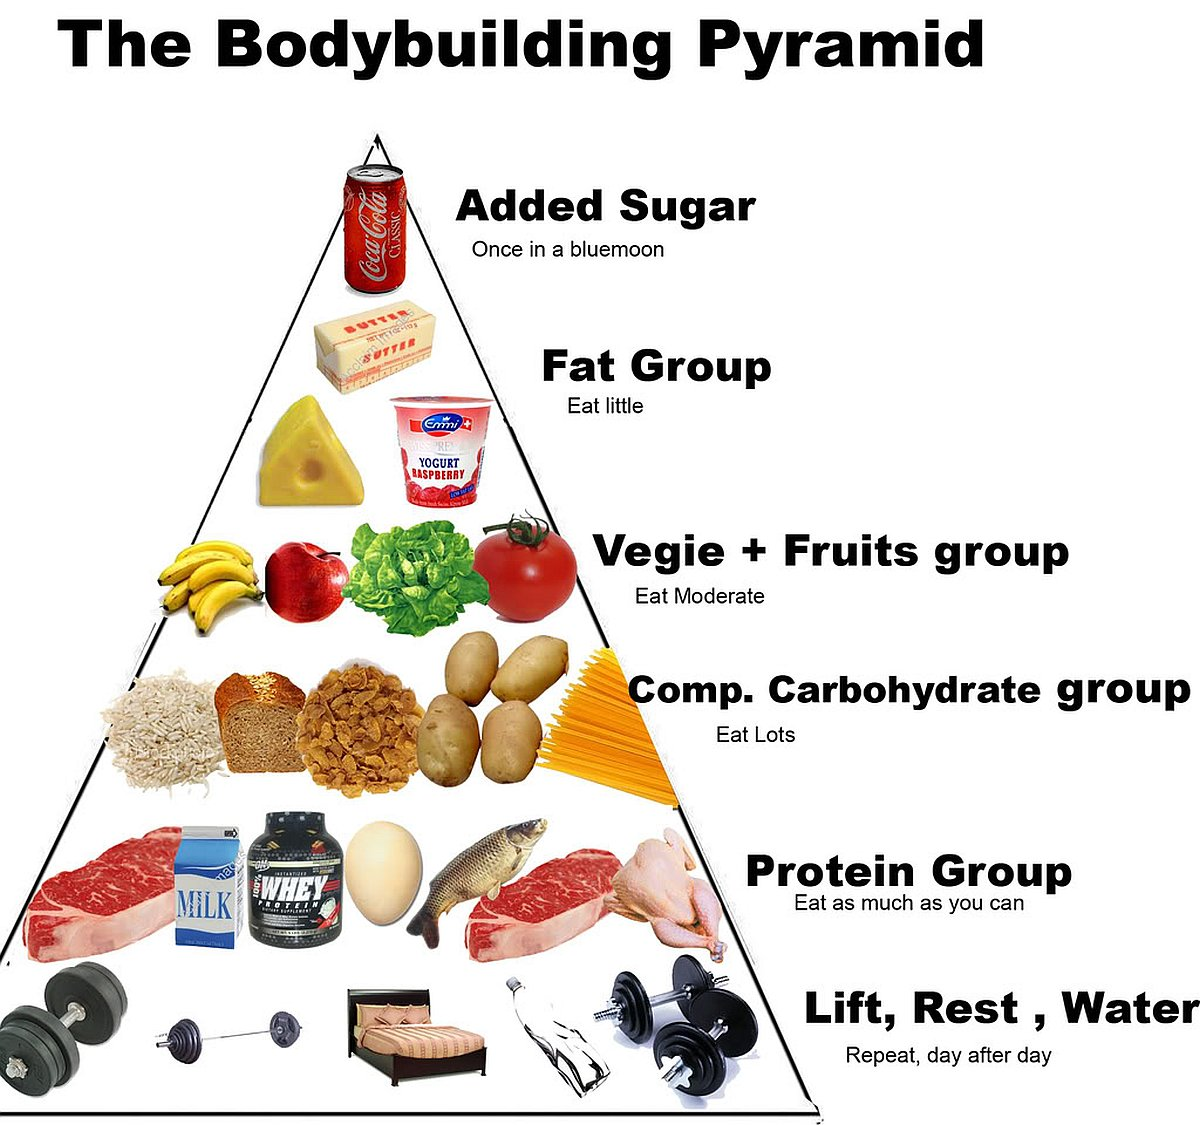 piramide-alimentare-body-building